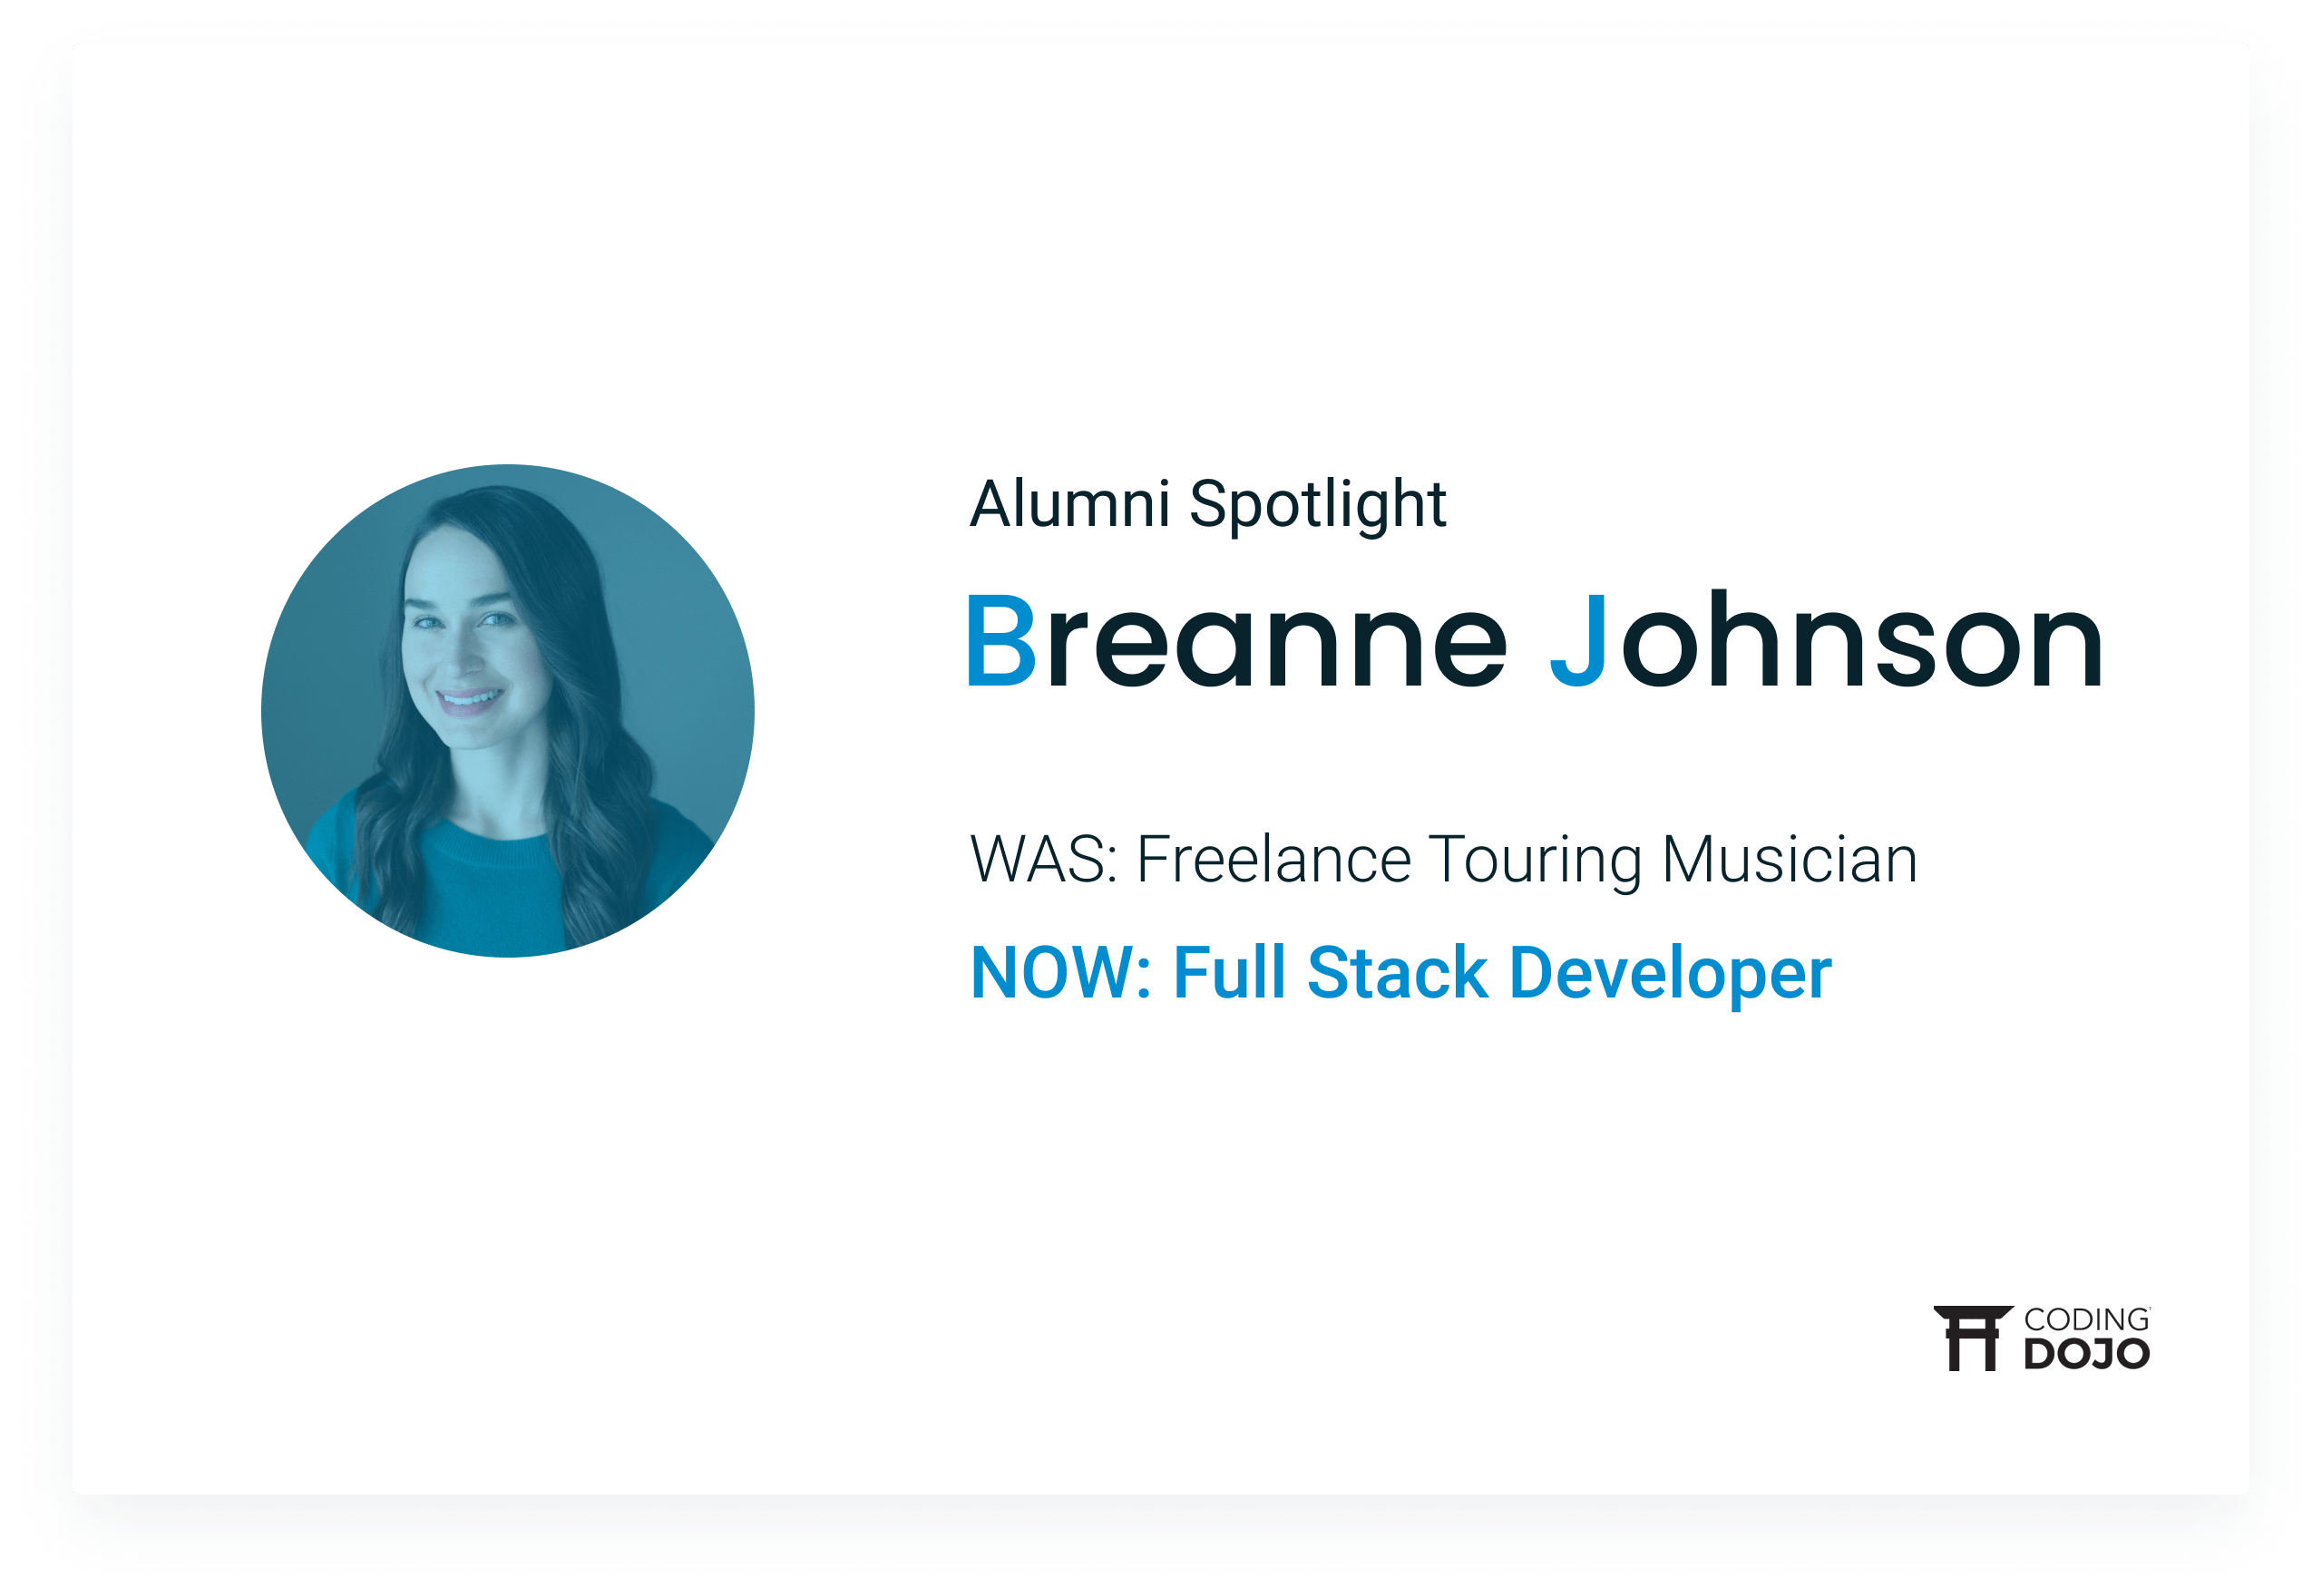 Coding Dojo Alumni Success | Breanne Johnson